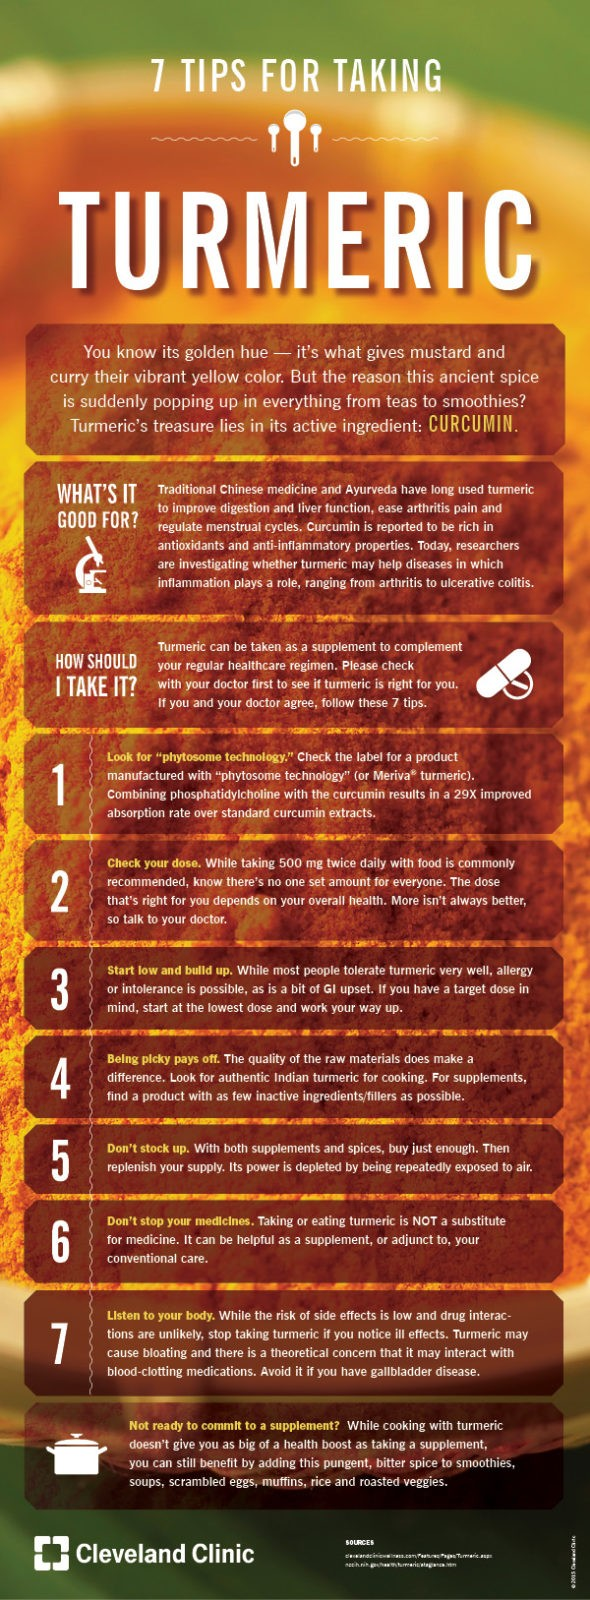 Cleveland Clinic - 7 Tips for Taking Turmeric